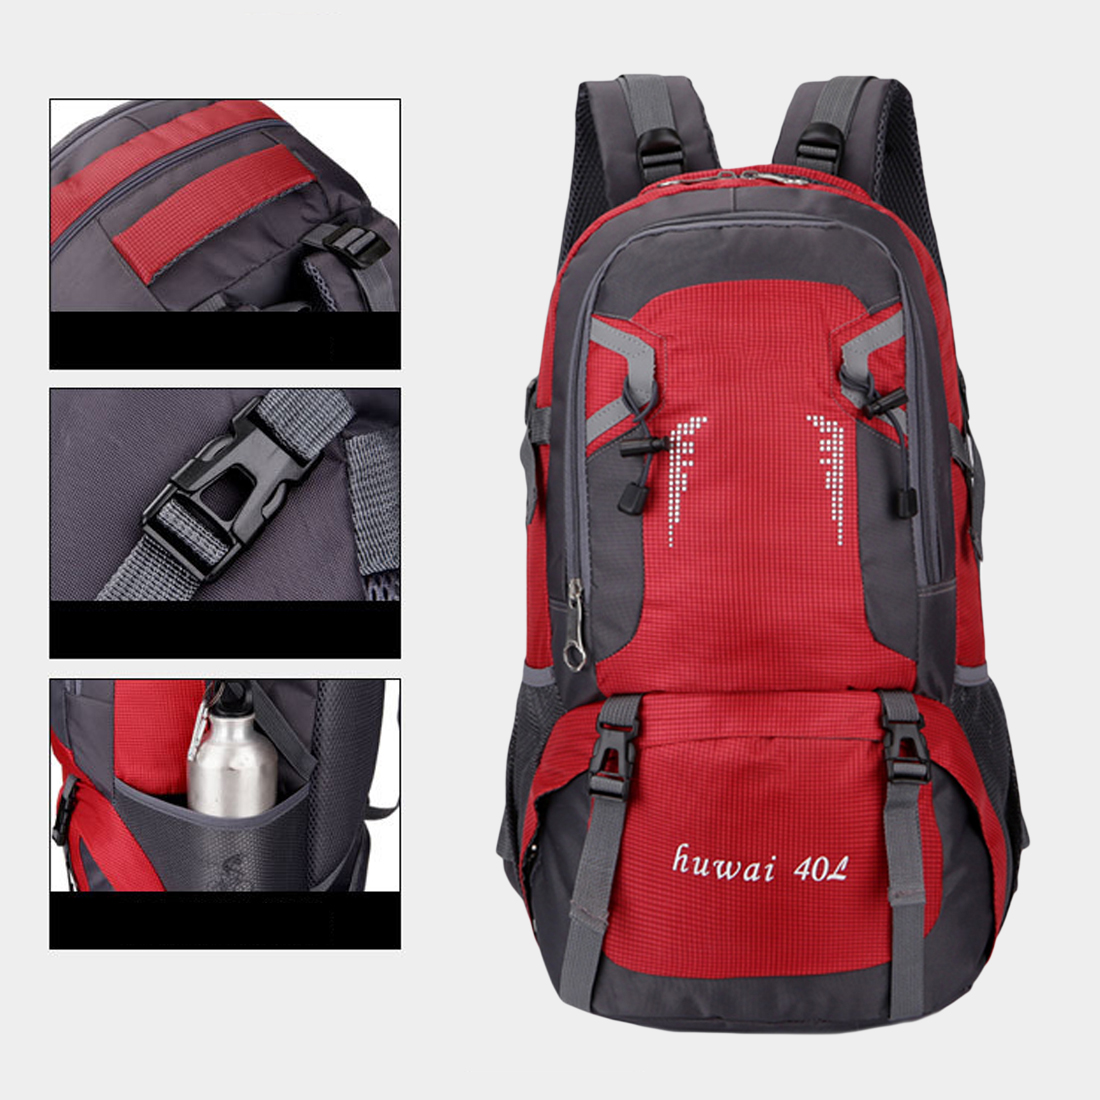 Tactical Men Backpack Women Climbing Sport Bag Outdoor Travel Backpacks Waterproof Hiking Camping Rucksack Nylon Computer Bags цена